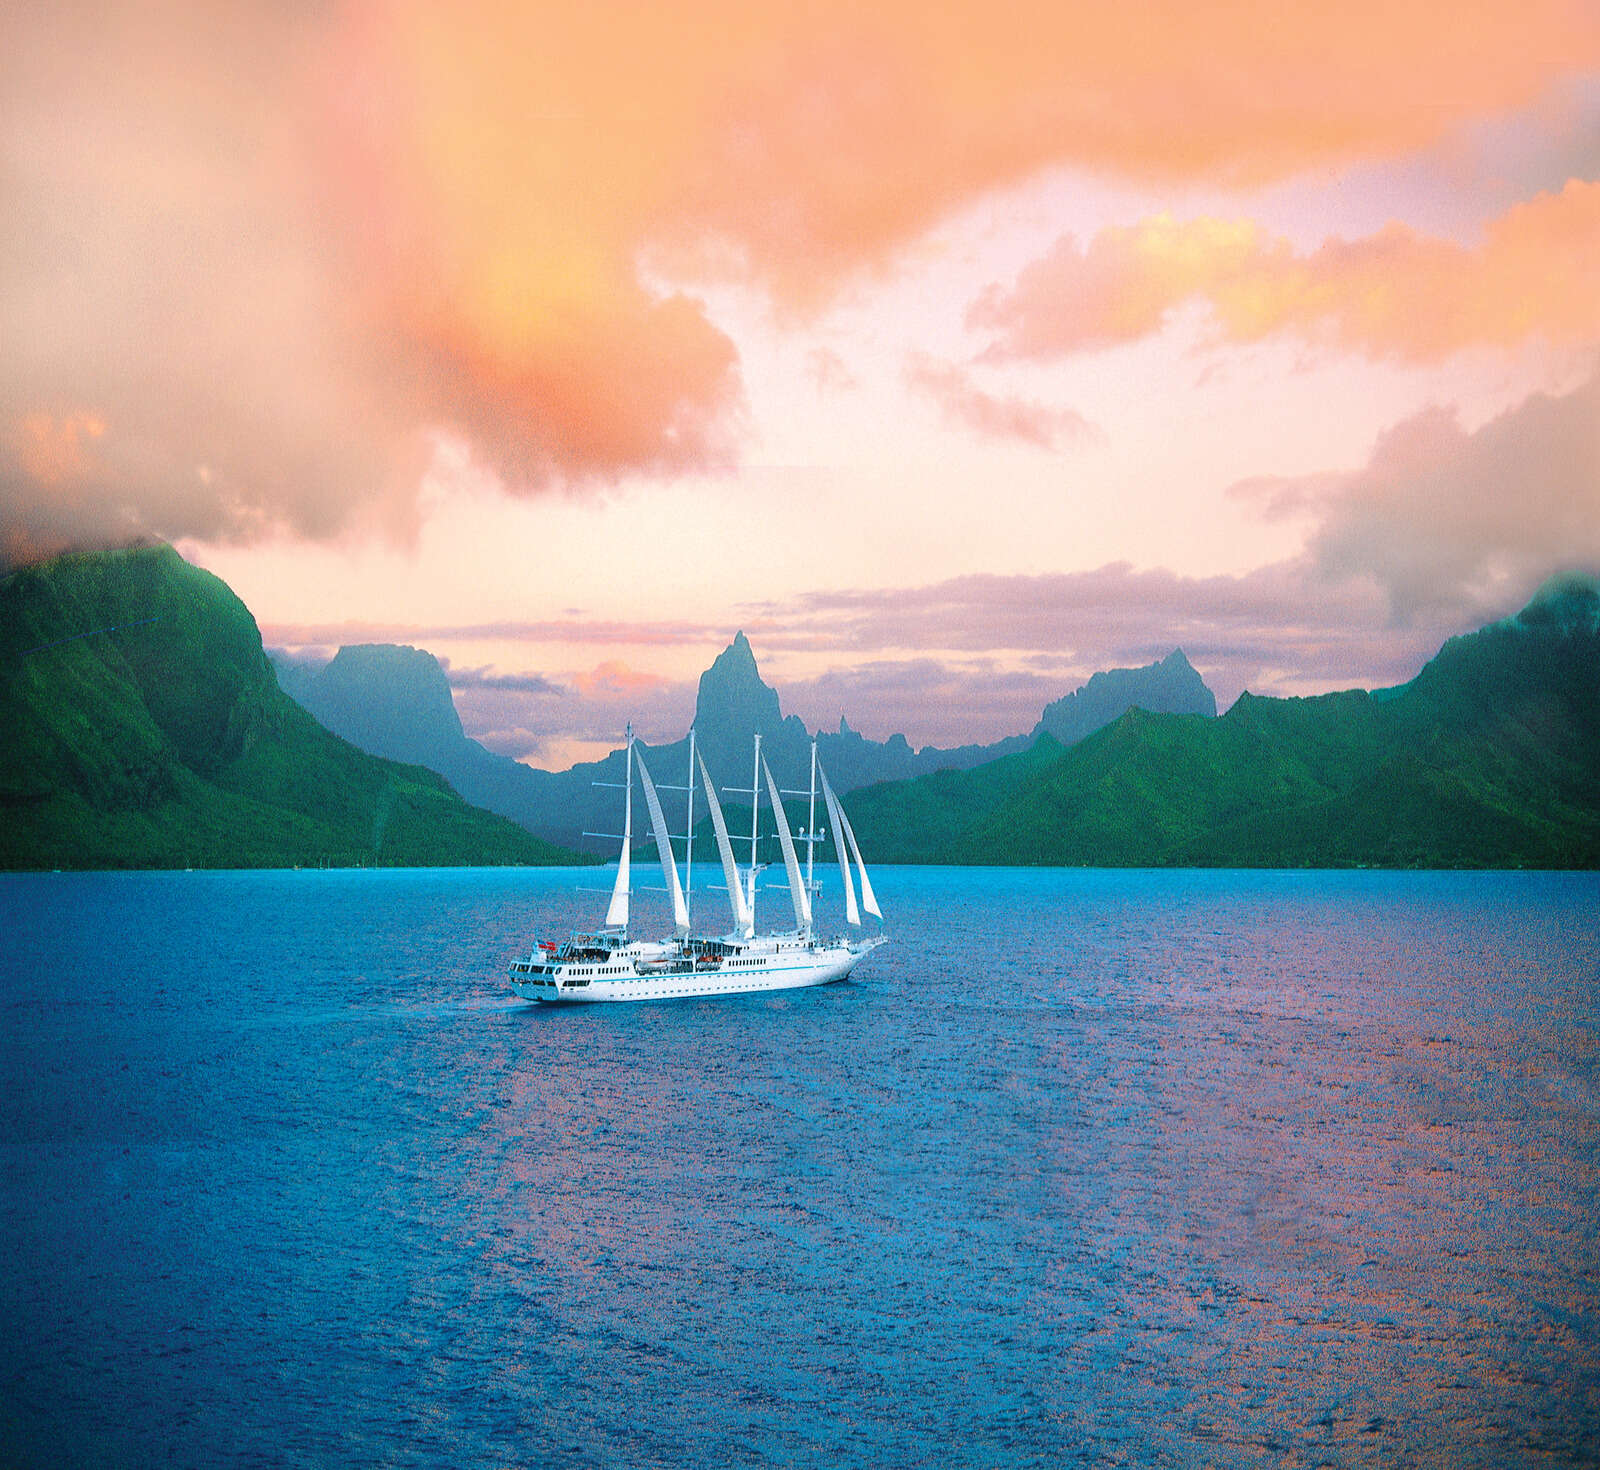 Windstar Cruises - Up to $400 Shipboard Credit